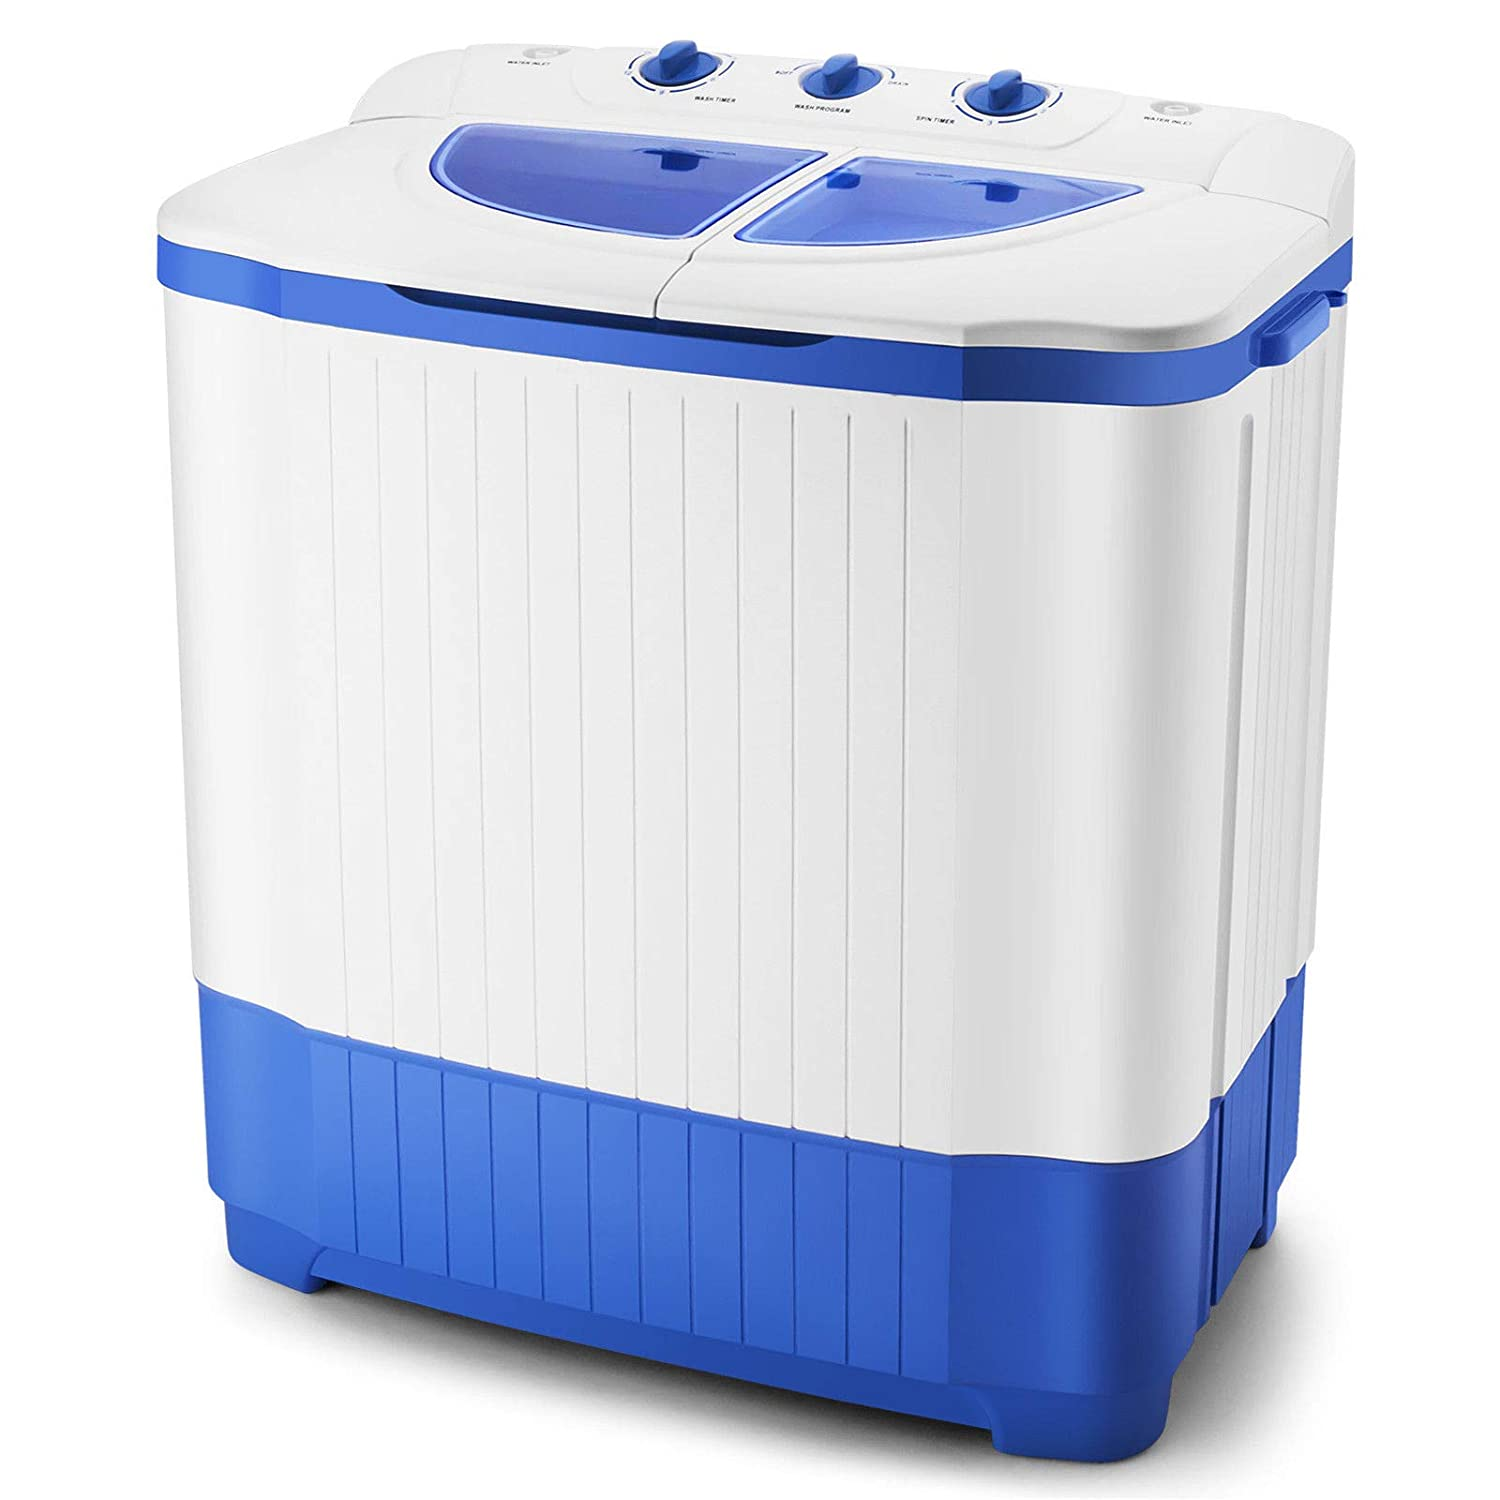 Artist Hand 18.7LBS Portable Mini Compact Twin Tub Washing Machine Washer Spin Dryer, Ideal for Dorms Apartments RV Camping limaotong